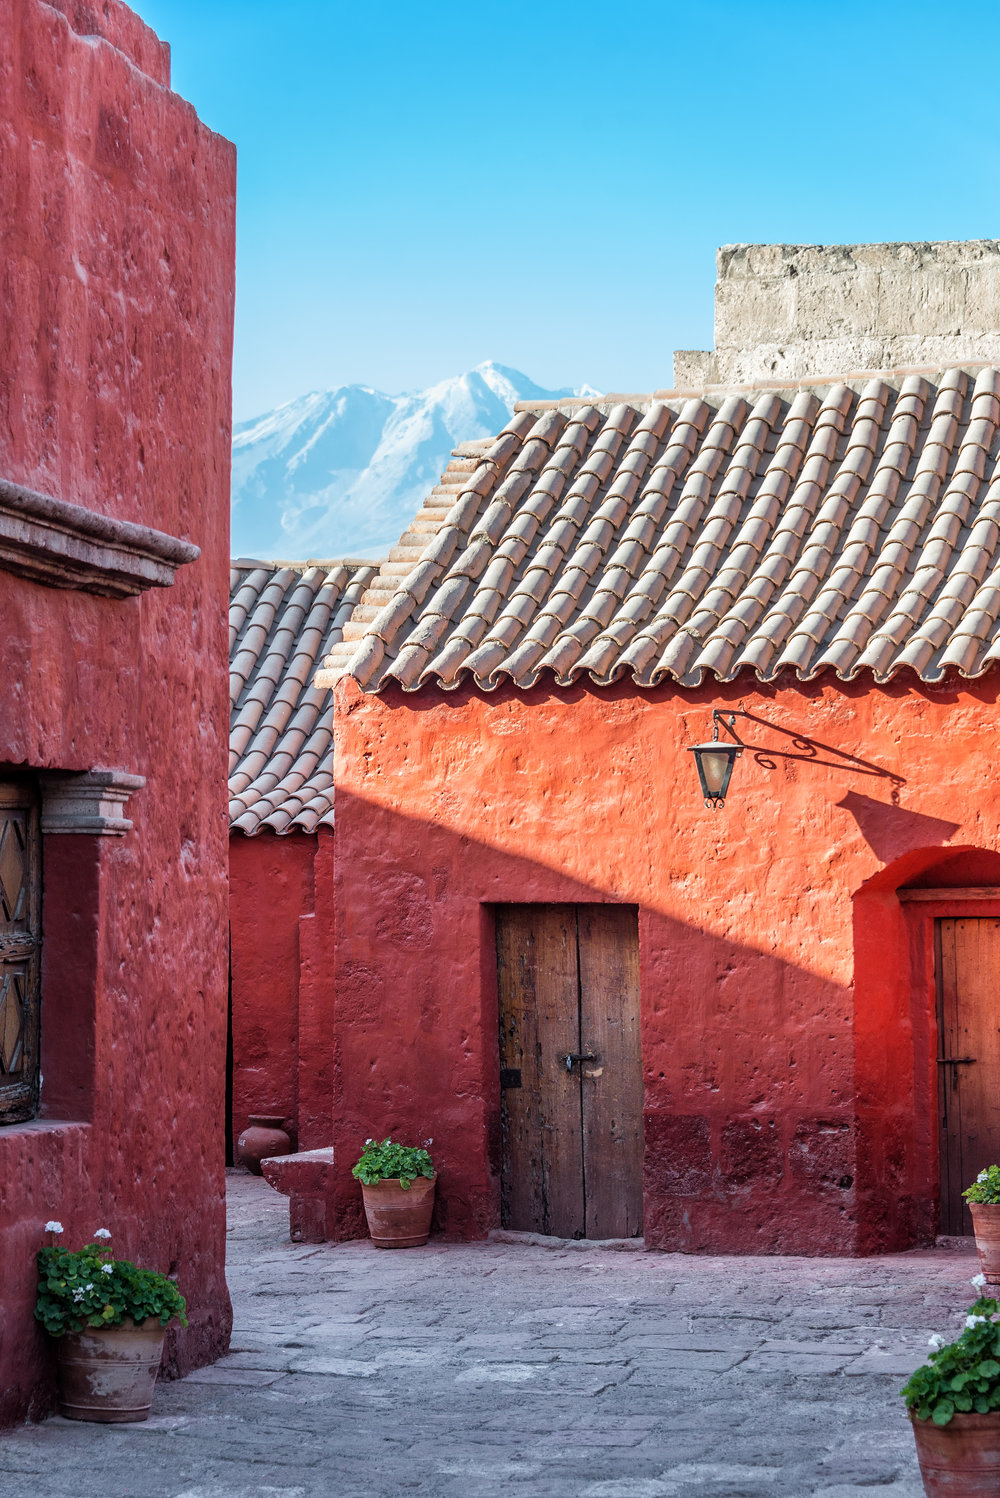 picfair-01344096-santa-catalina-monastery-and-volcano.jpg